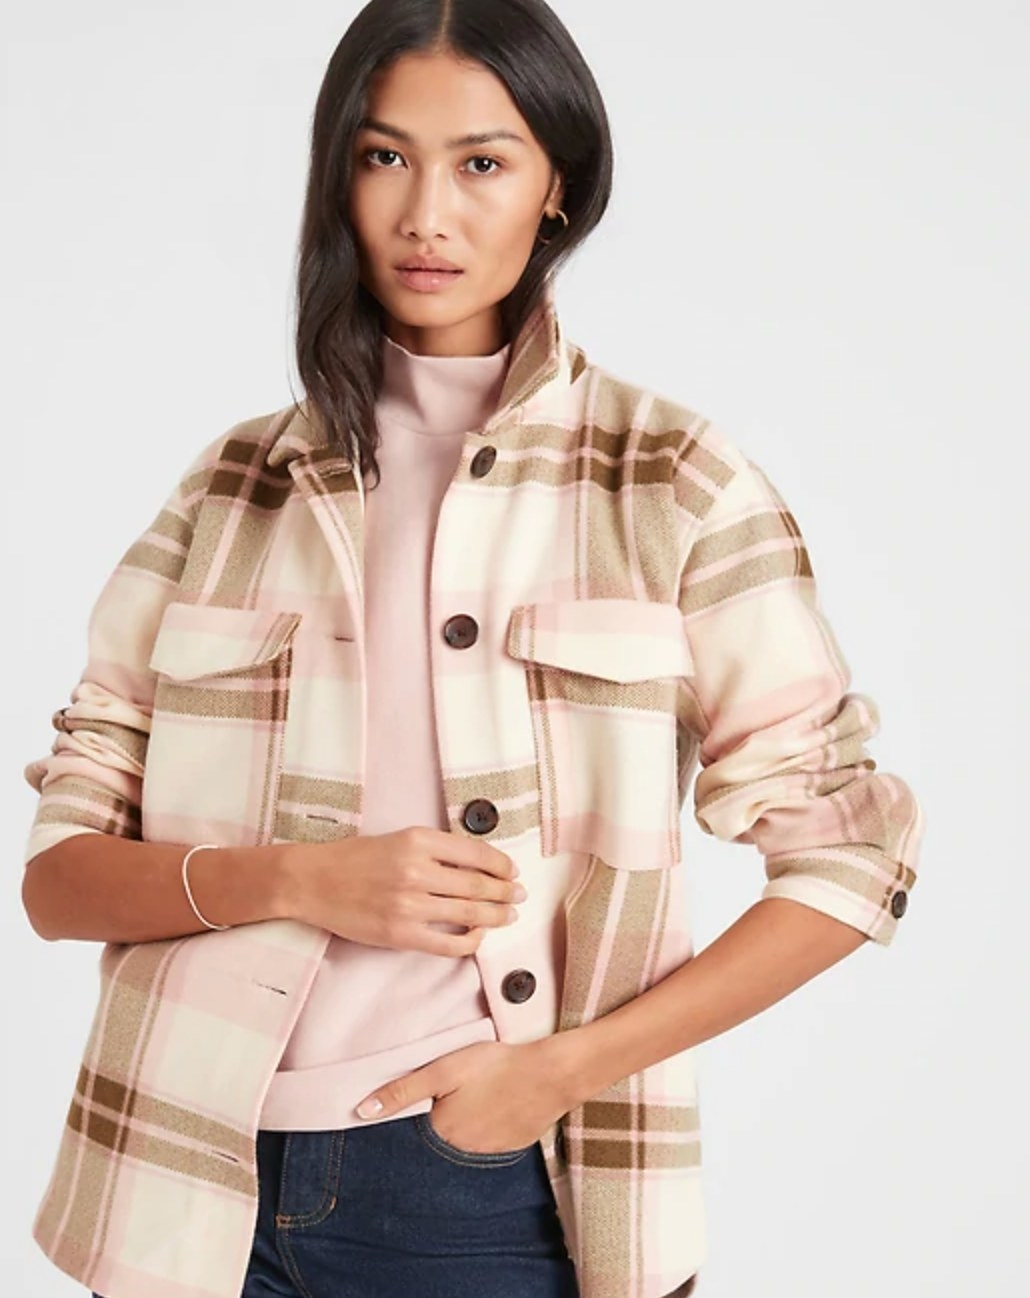 The shirt jacket in neutral plaid